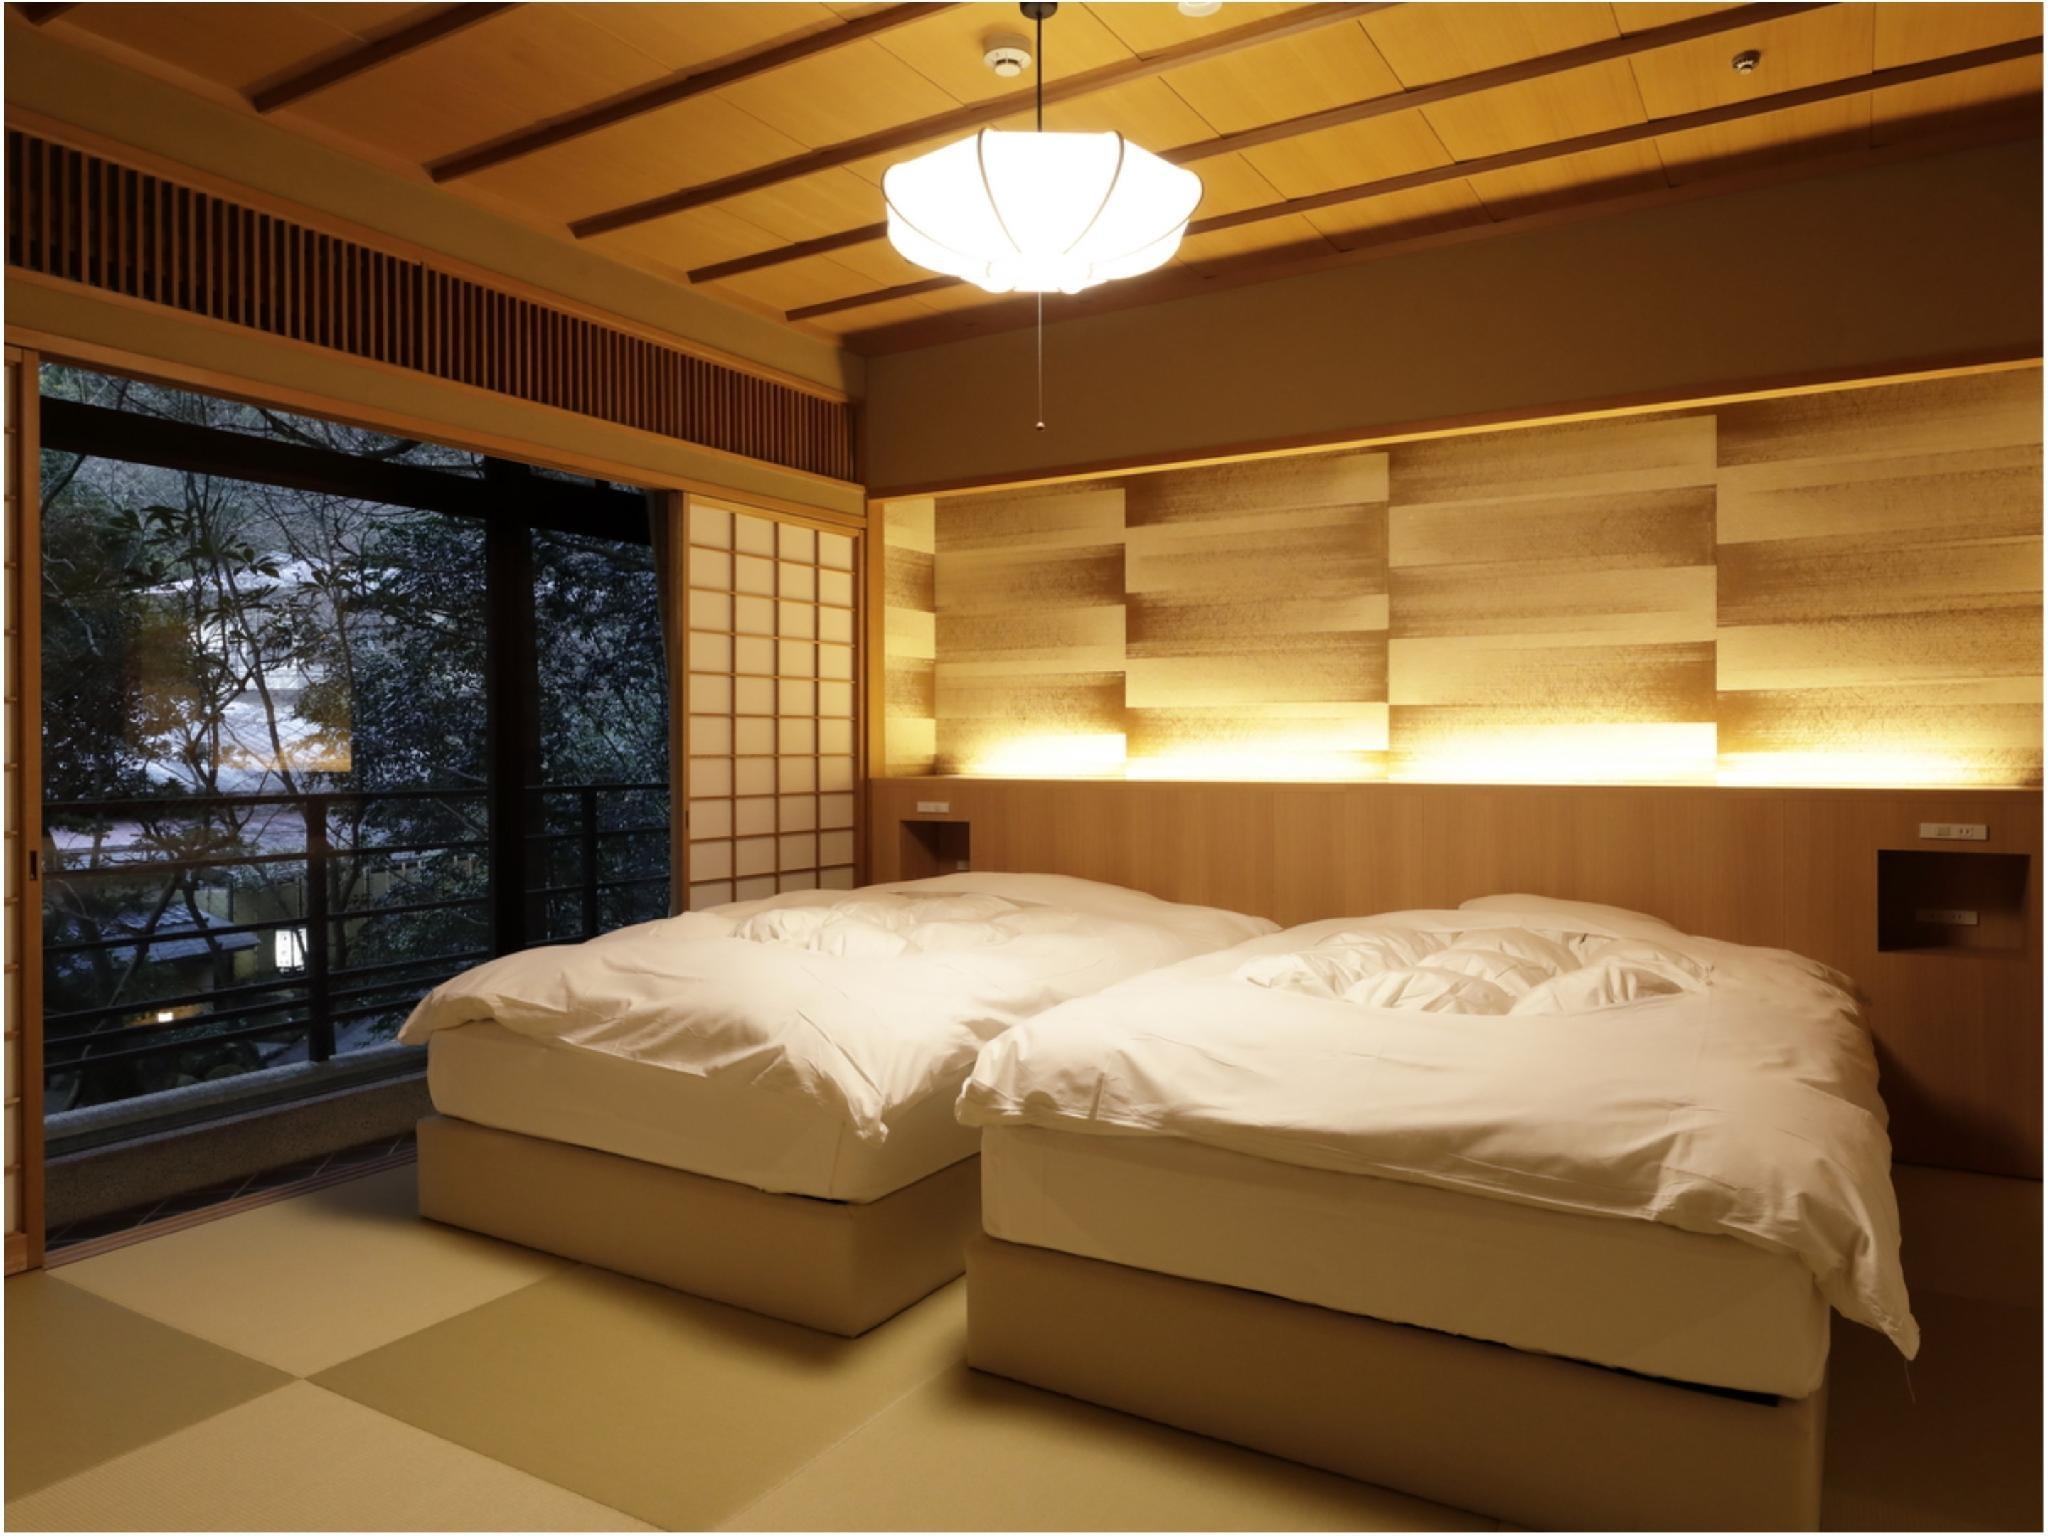 桃山第 豪華套房(和式房+寢室) (Deluxe Suite (Japanese-style Room + Bedroom, Momoyamadai Wing))